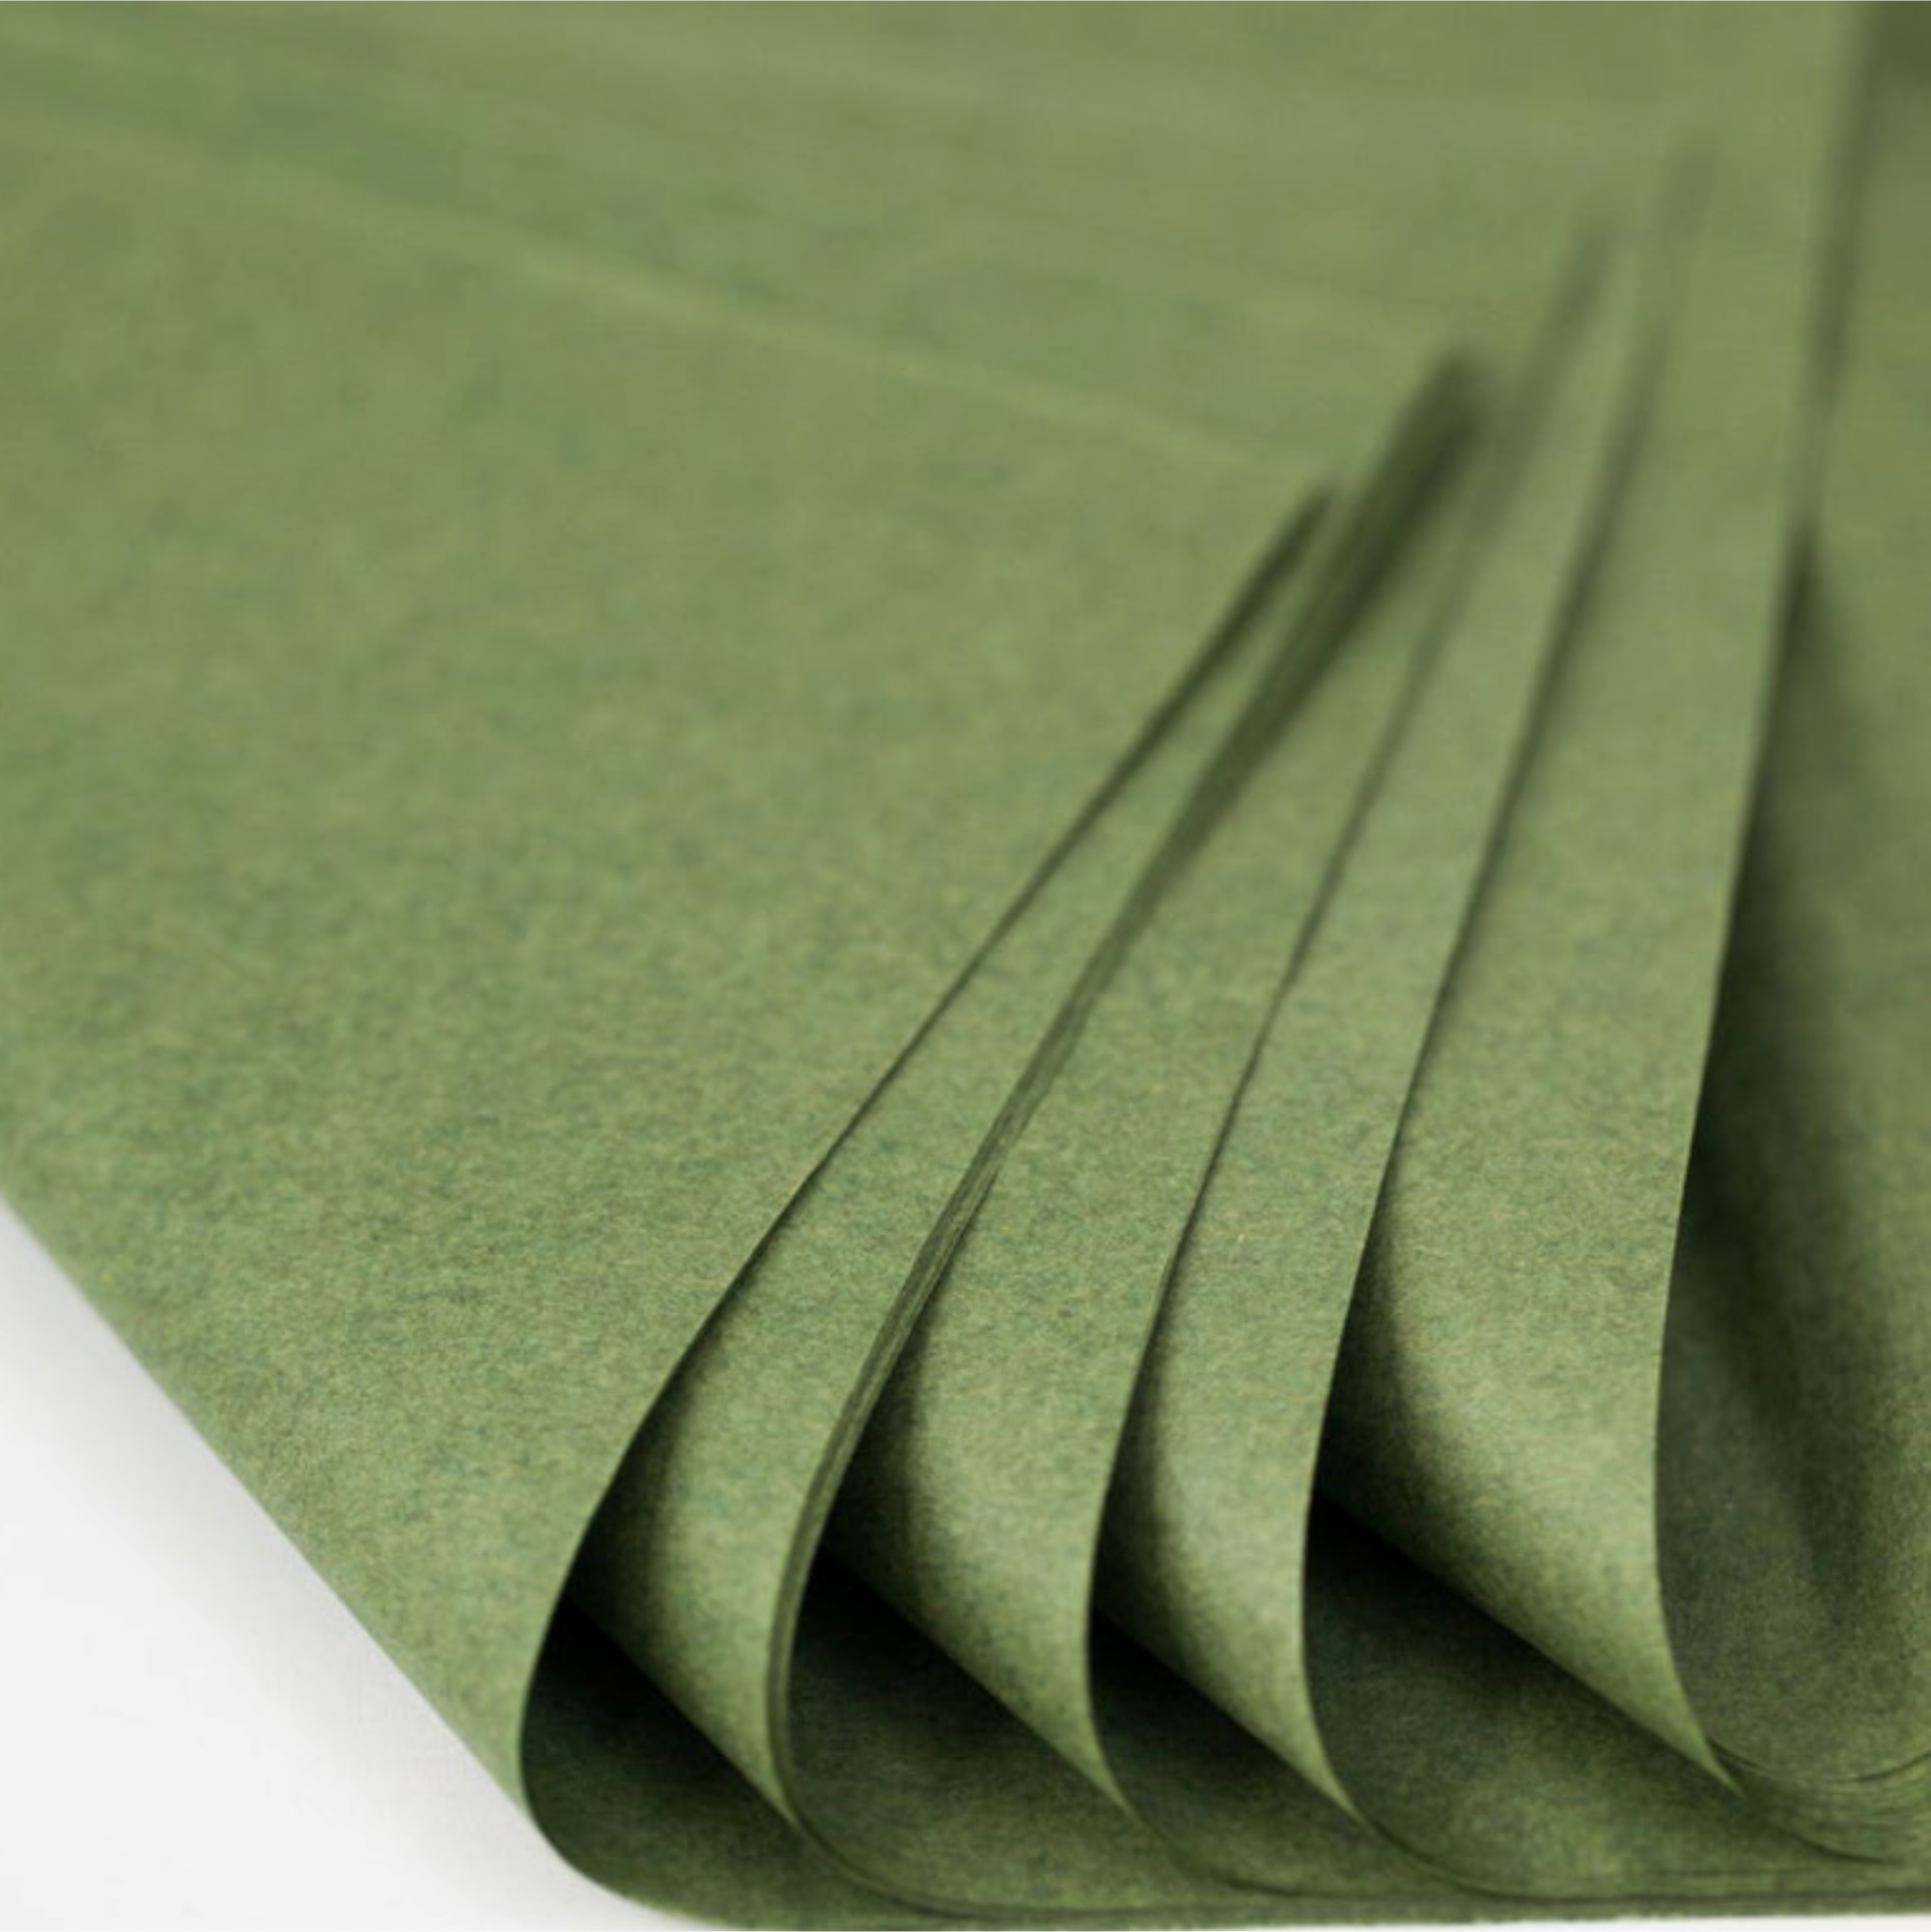 500 Sheets Acid Free Tissue Paper 500x750mm 17gsm Moss